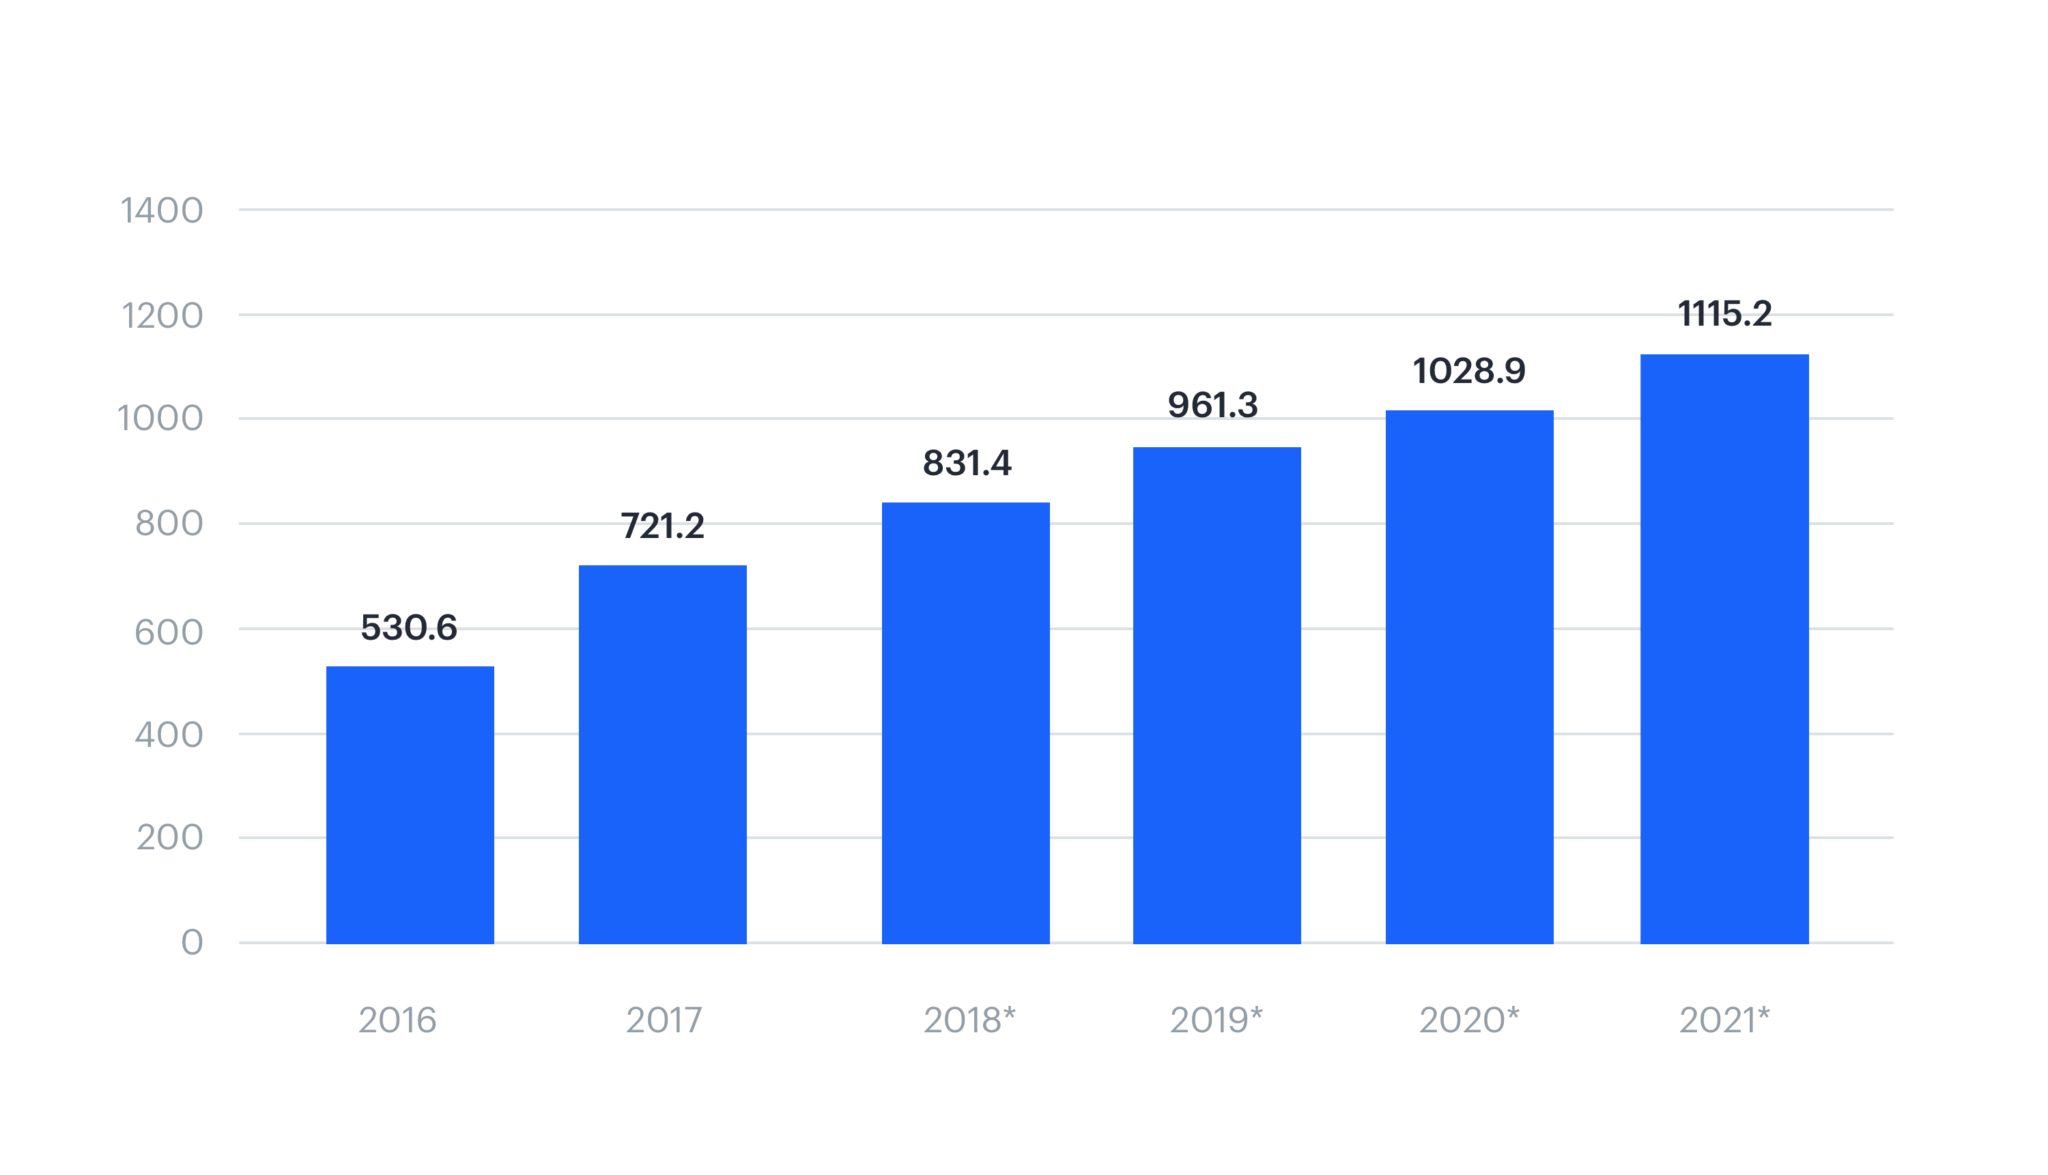 The number of proximity mobile payment transaction users worldwide from 2016 to 2020 (in milions)